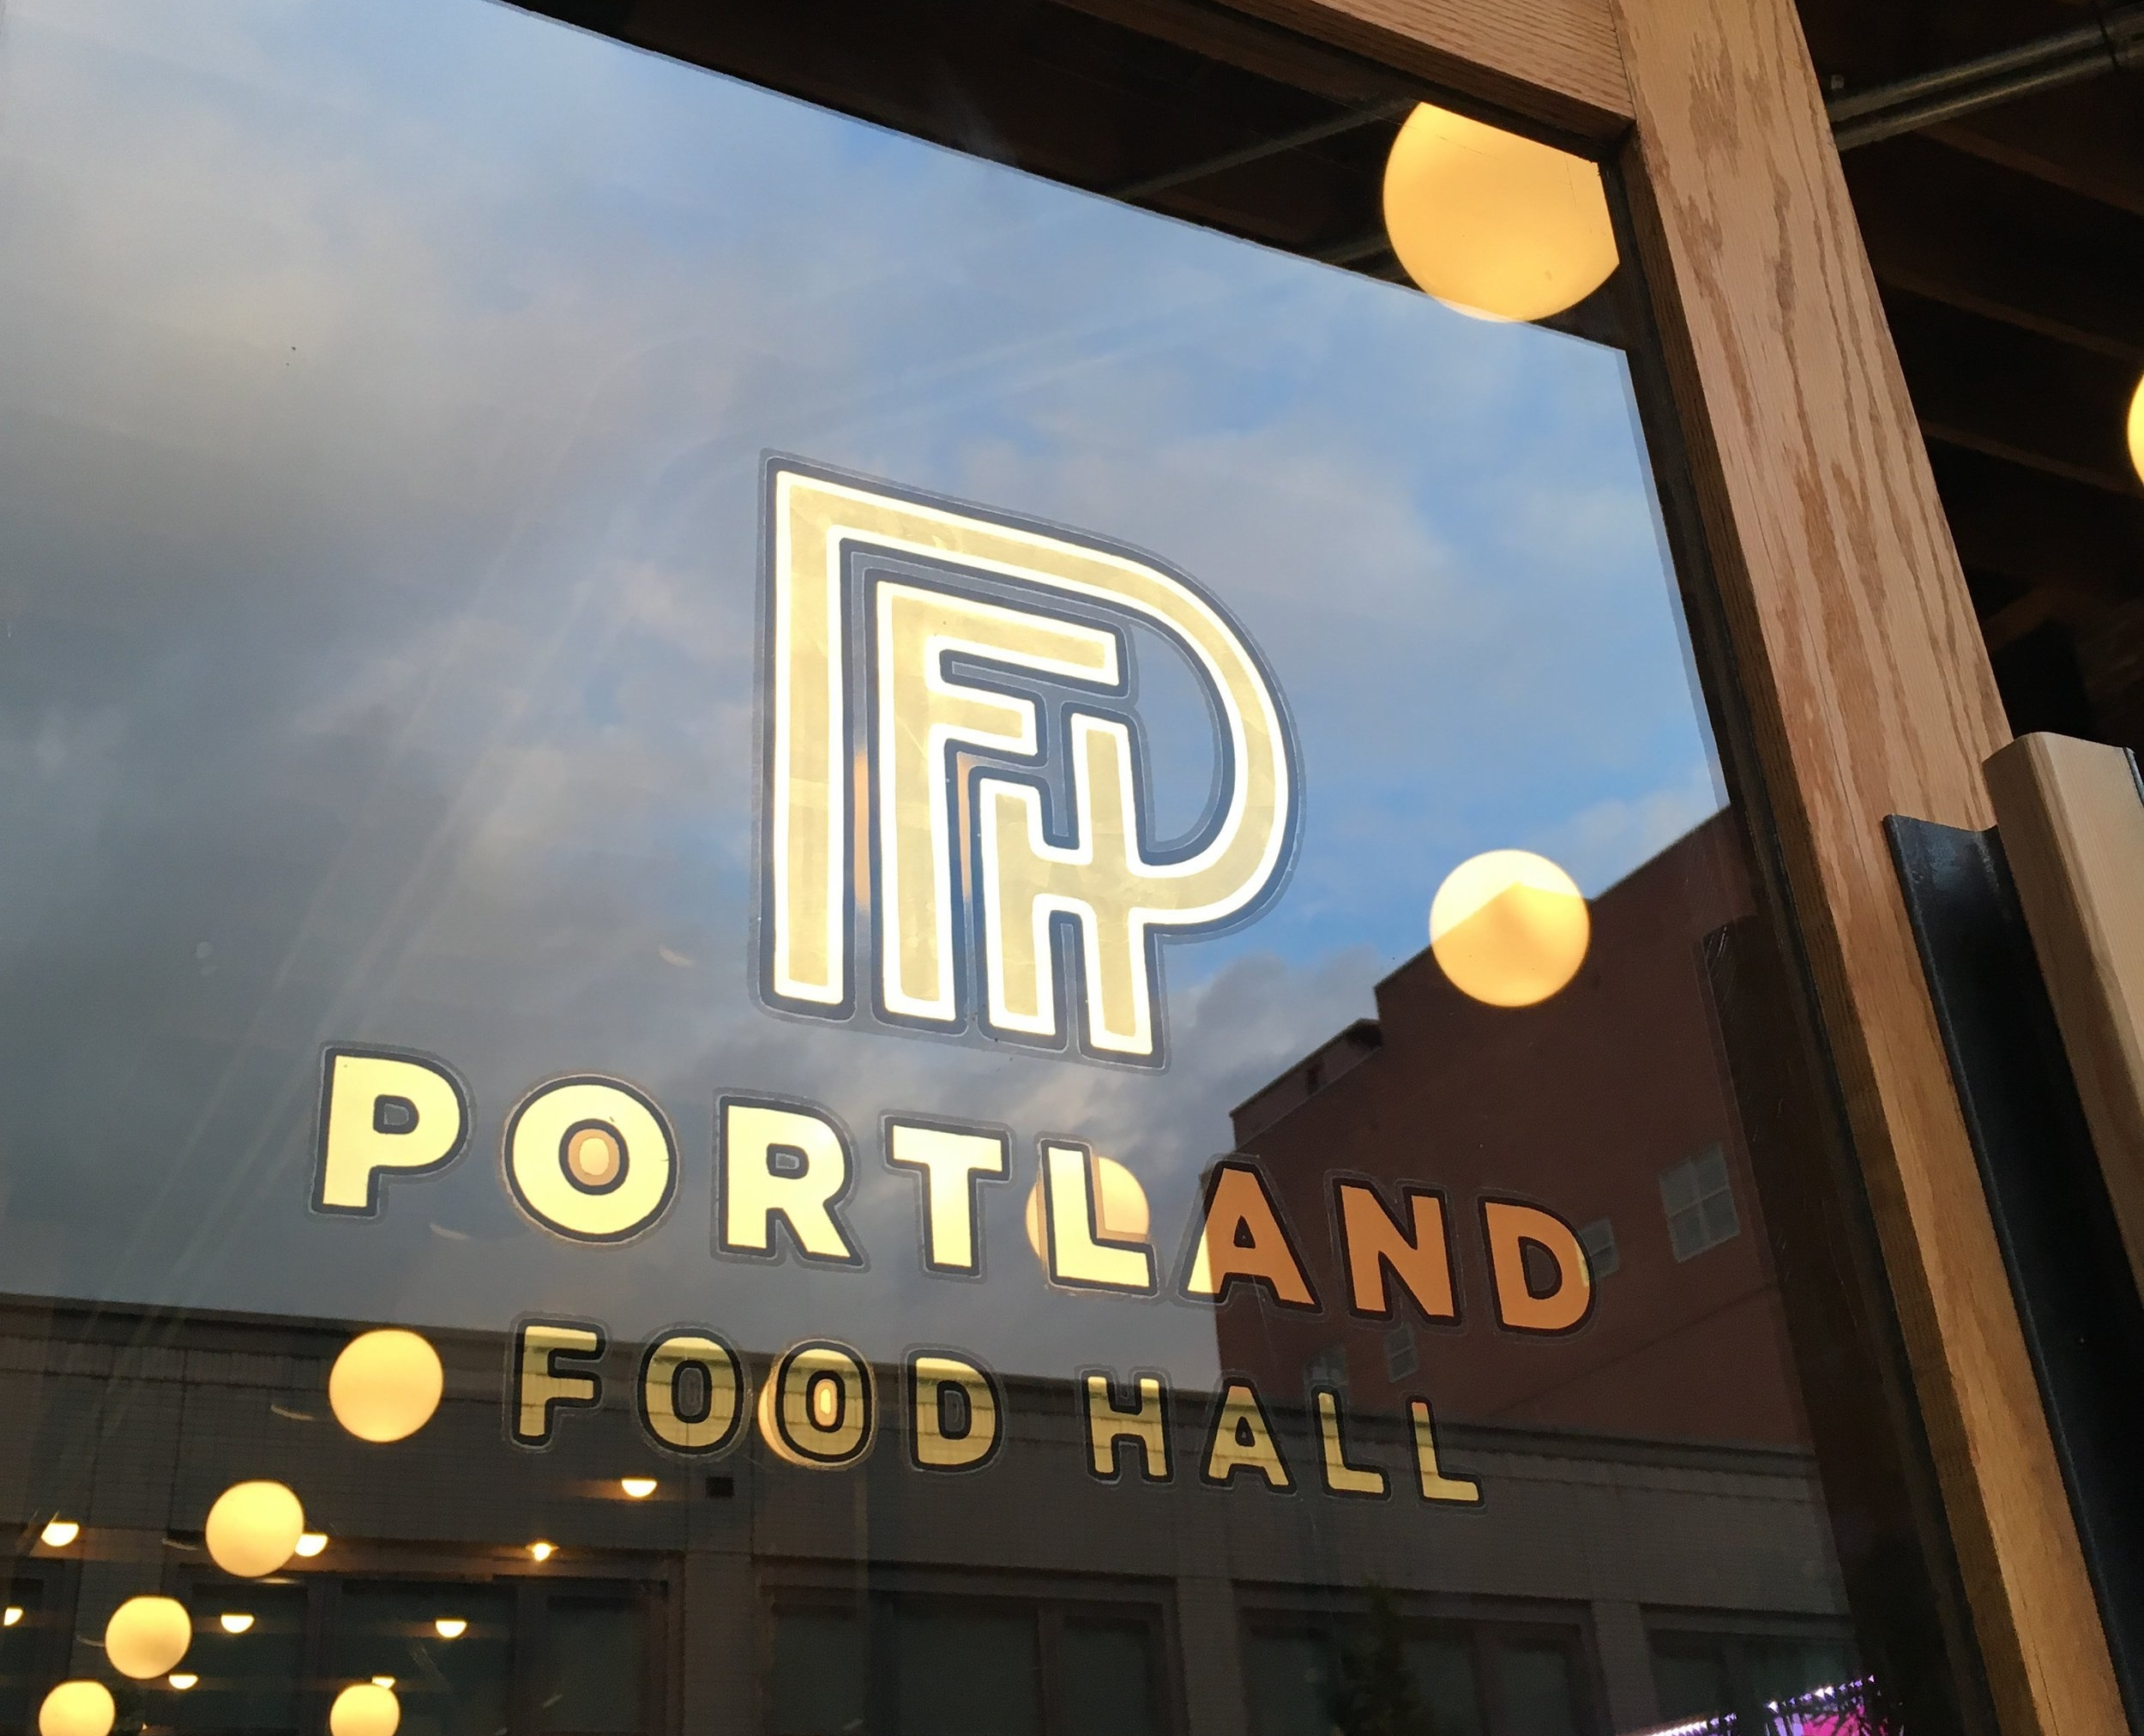 Portland Food Hall - Branding and collateral for a new restaurant venue in downtown Portland.